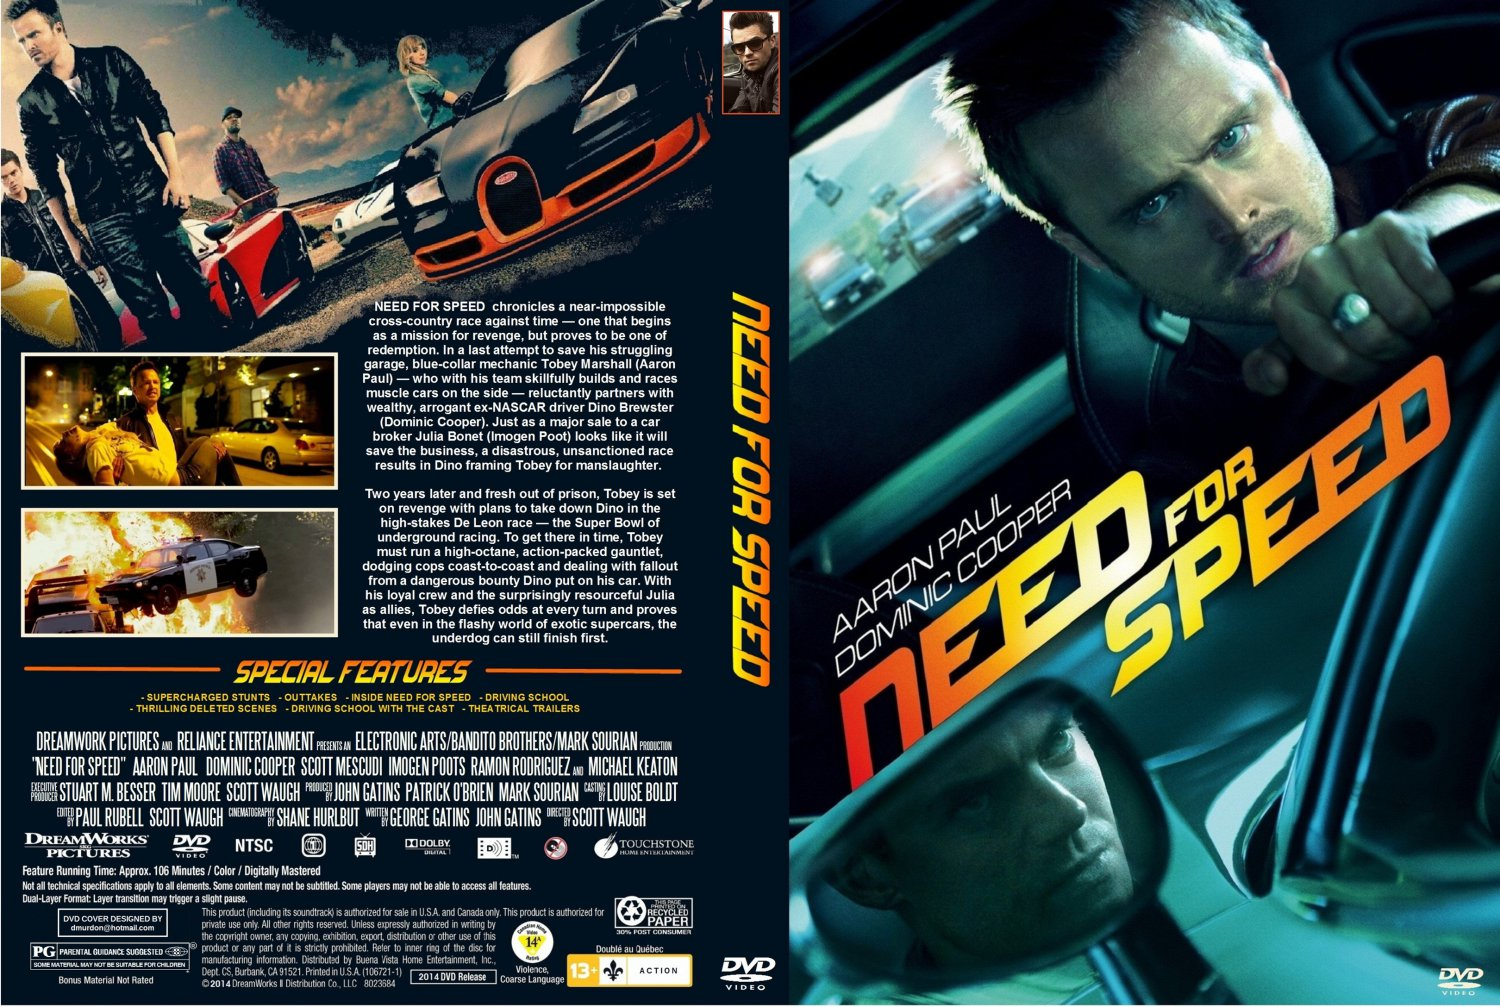 Download Film Nfs Most Wanted Full Movie